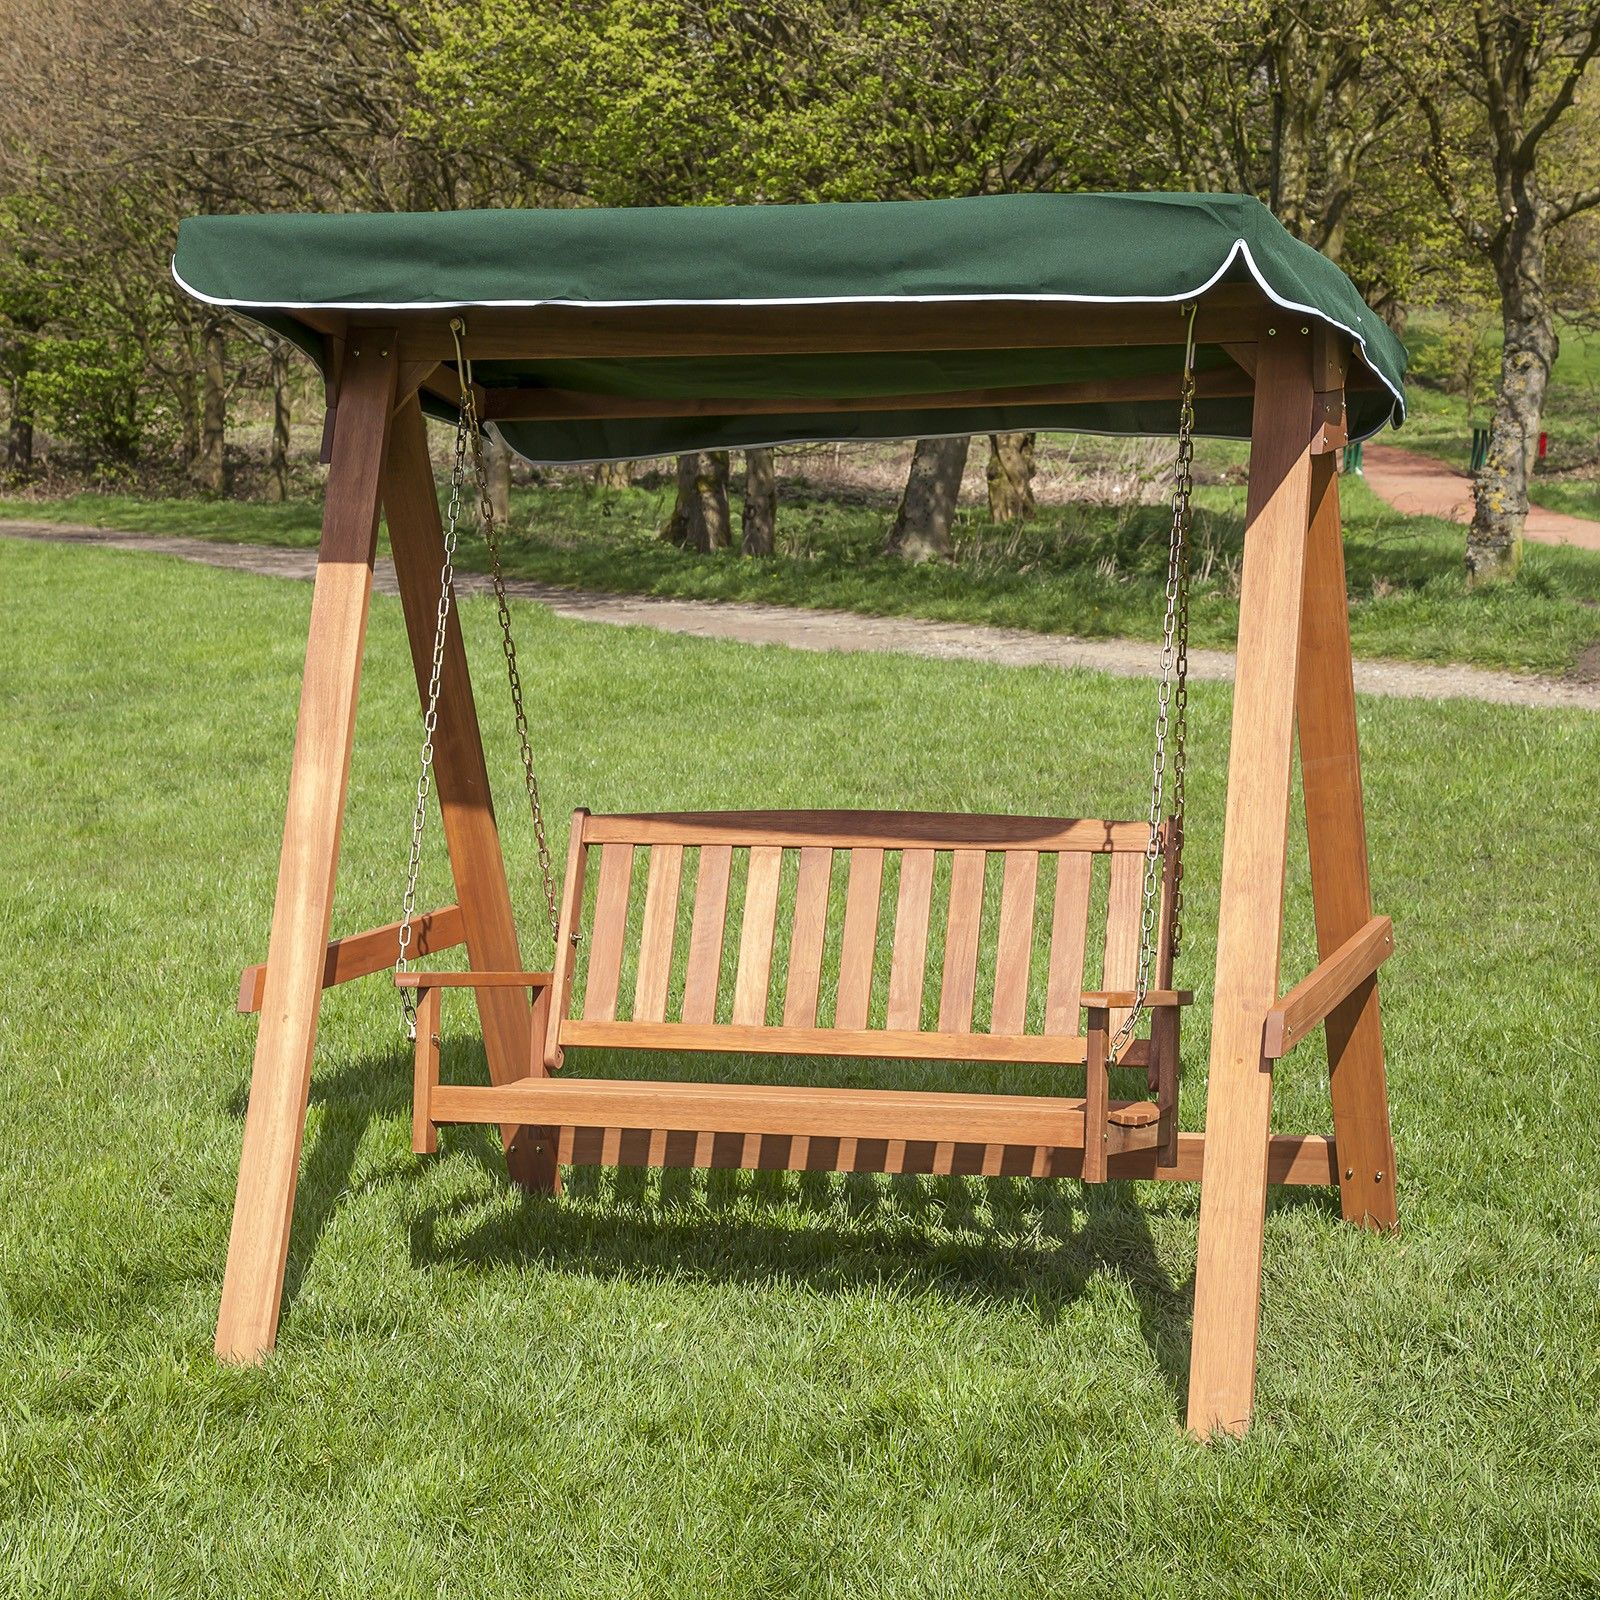 Backyard wooden swing chairs - Wooden Swing Seat For 2